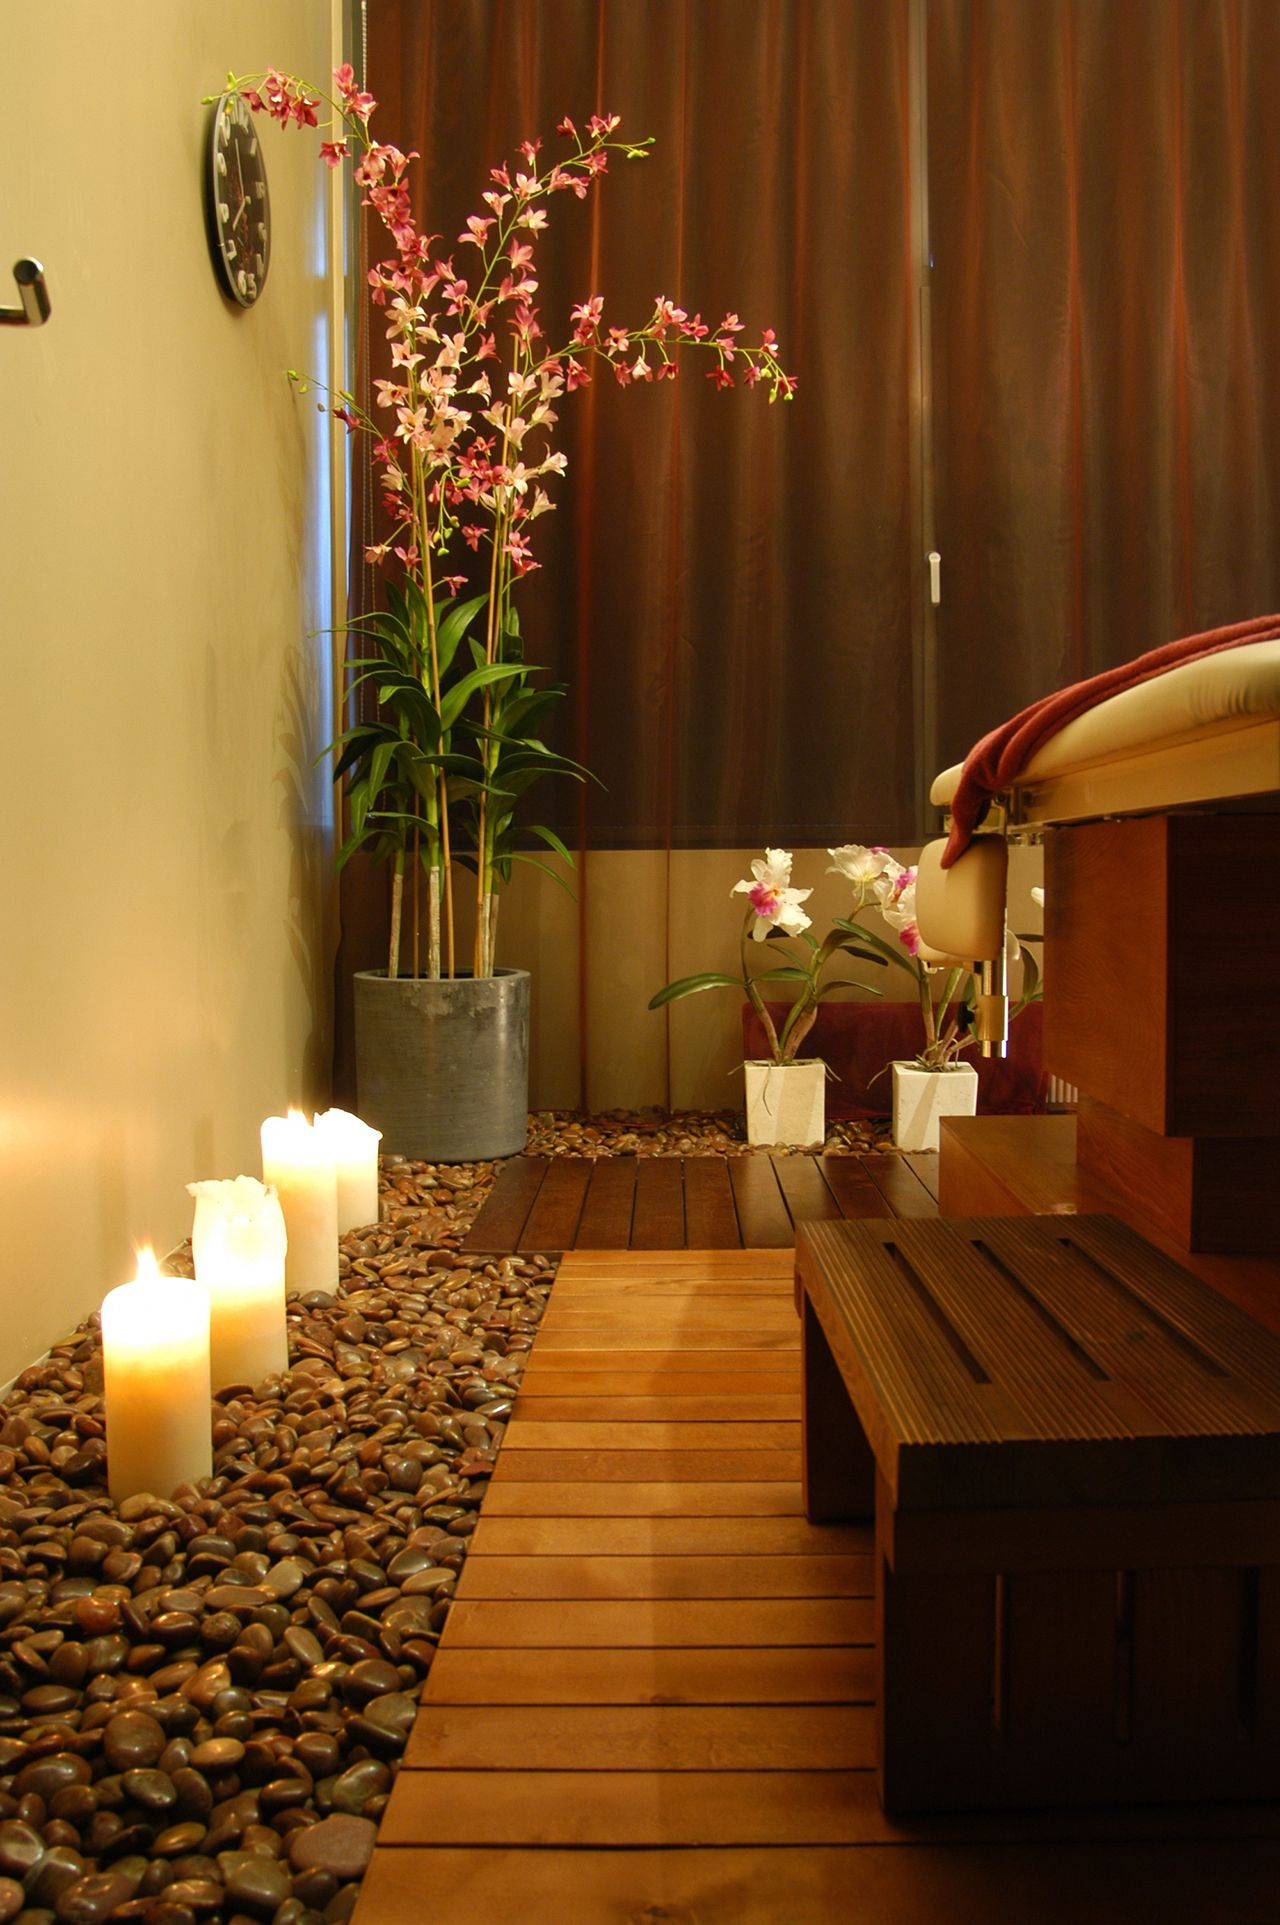 meditation room ideas that will improve your life zen